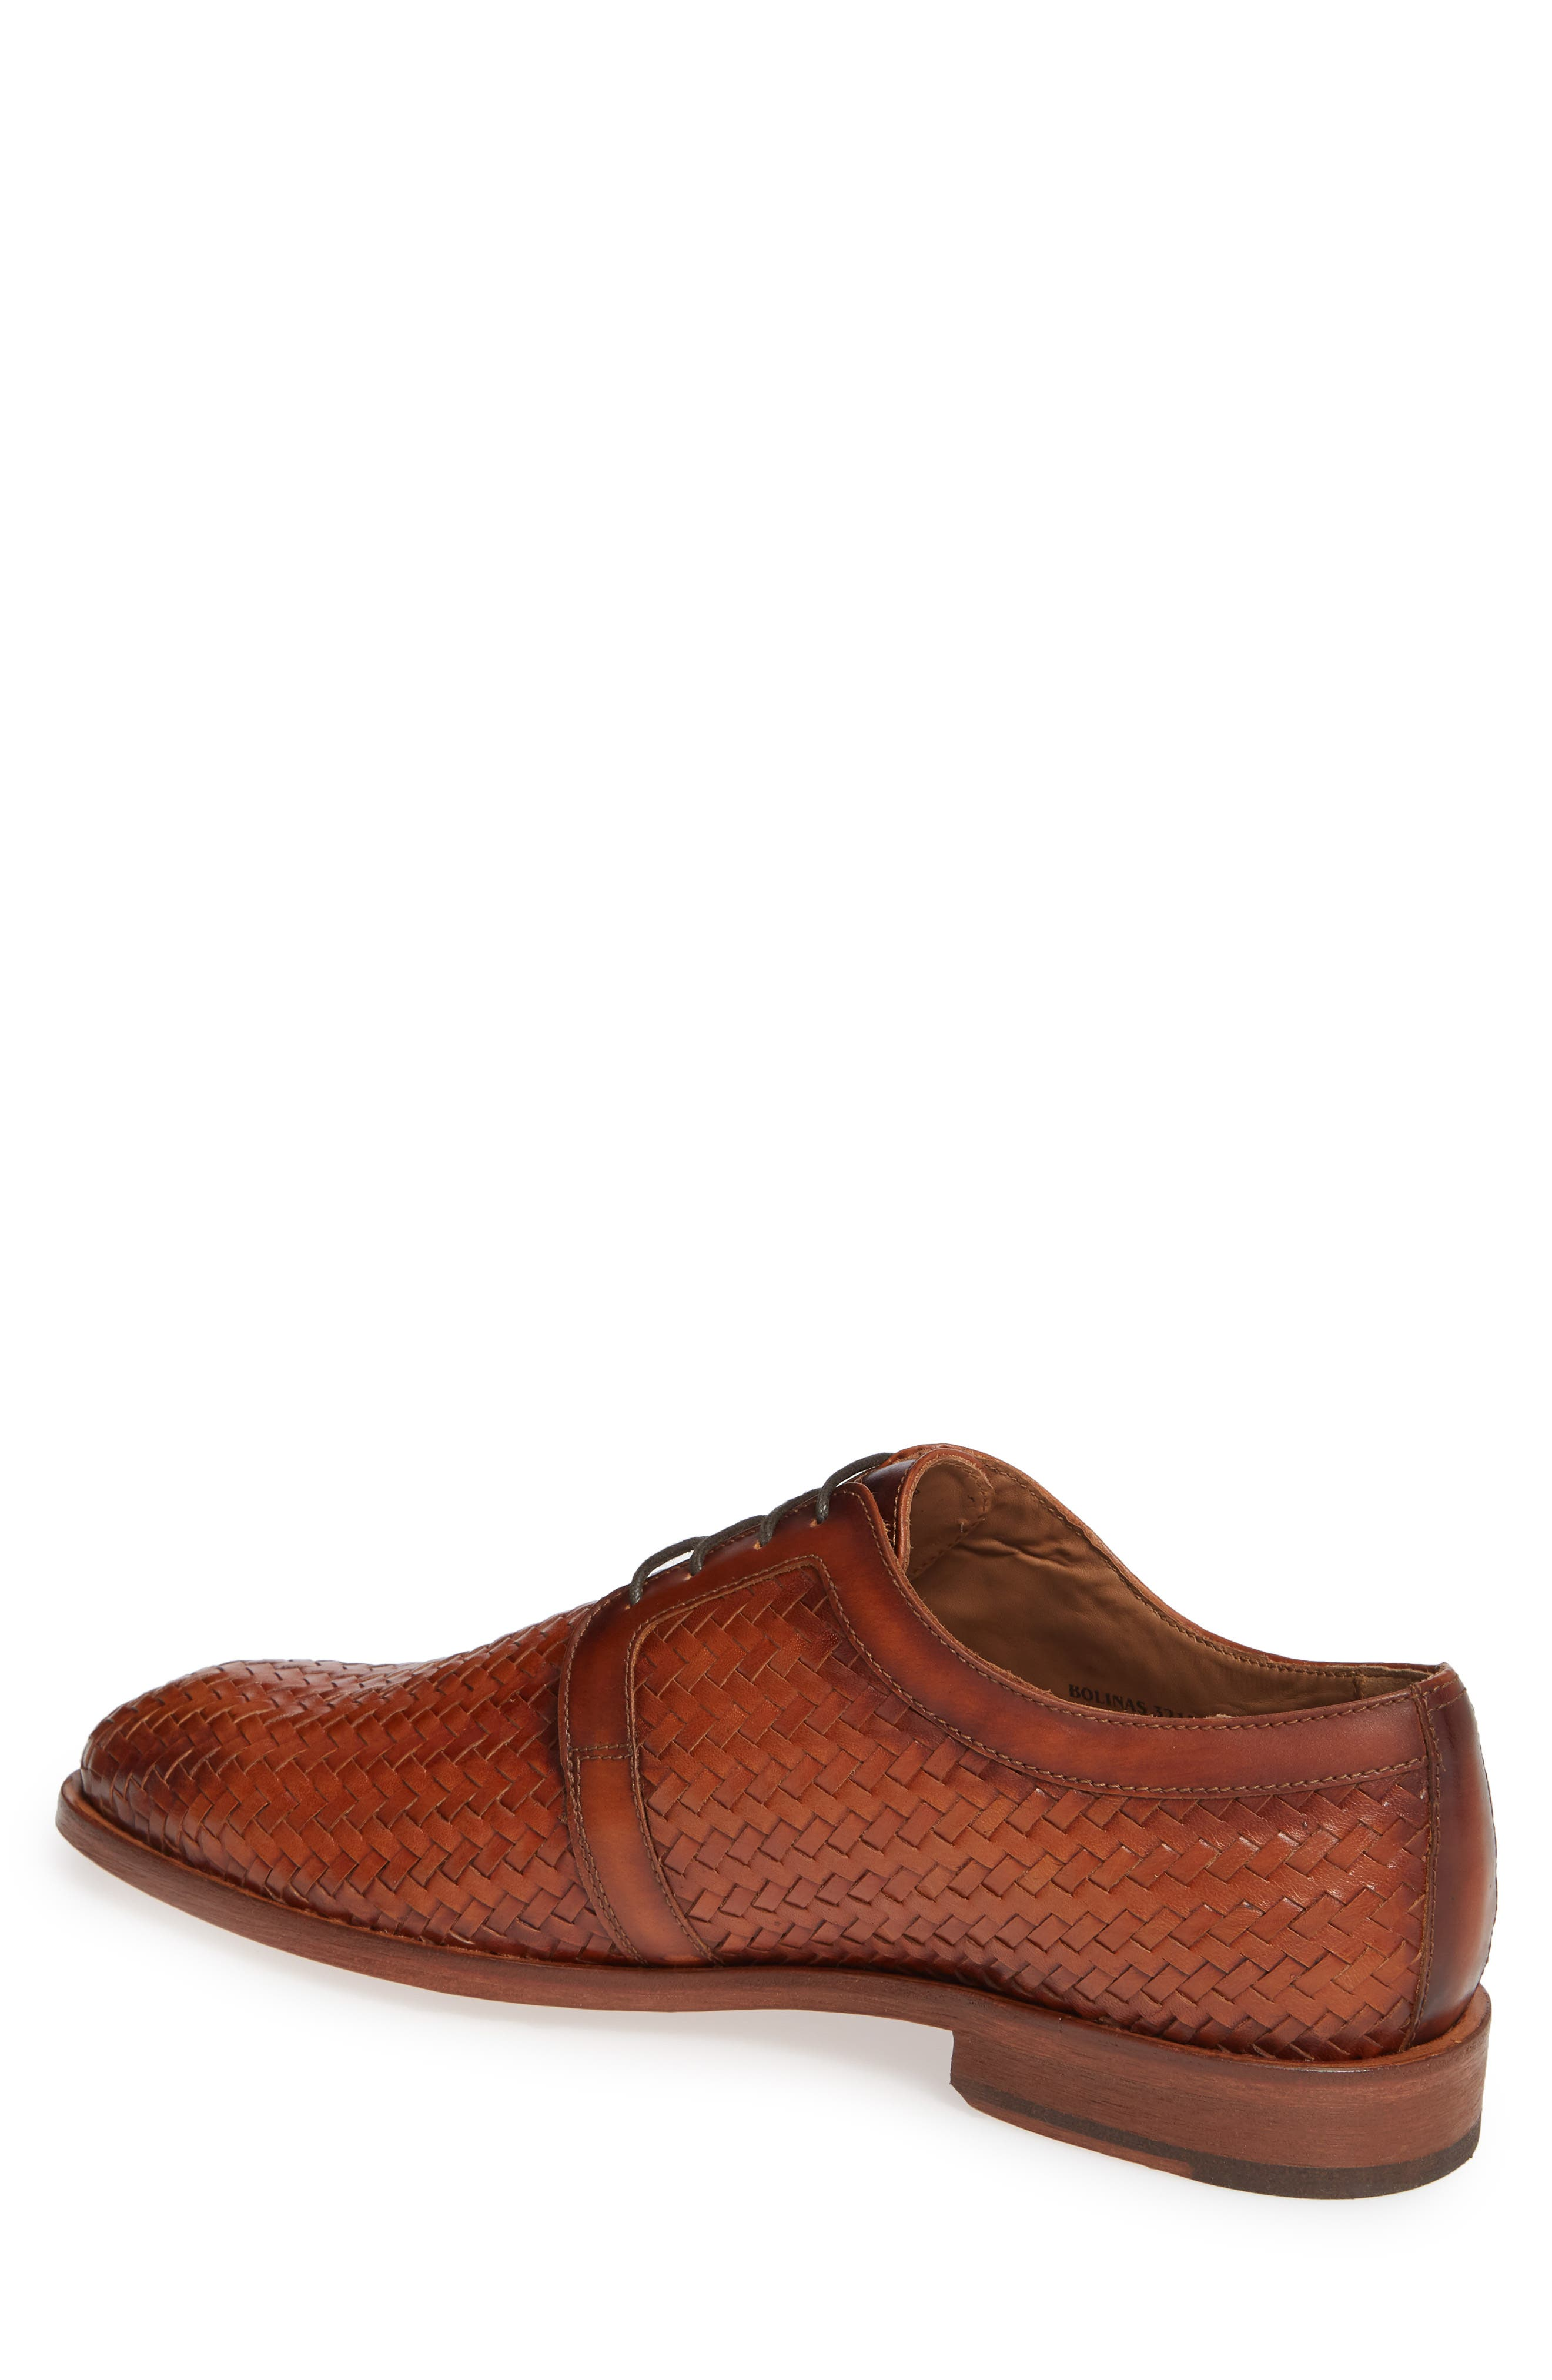 Bolinas True Woven Derby,                             Alternate thumbnail 2, color,                             COGNAC LEATHER